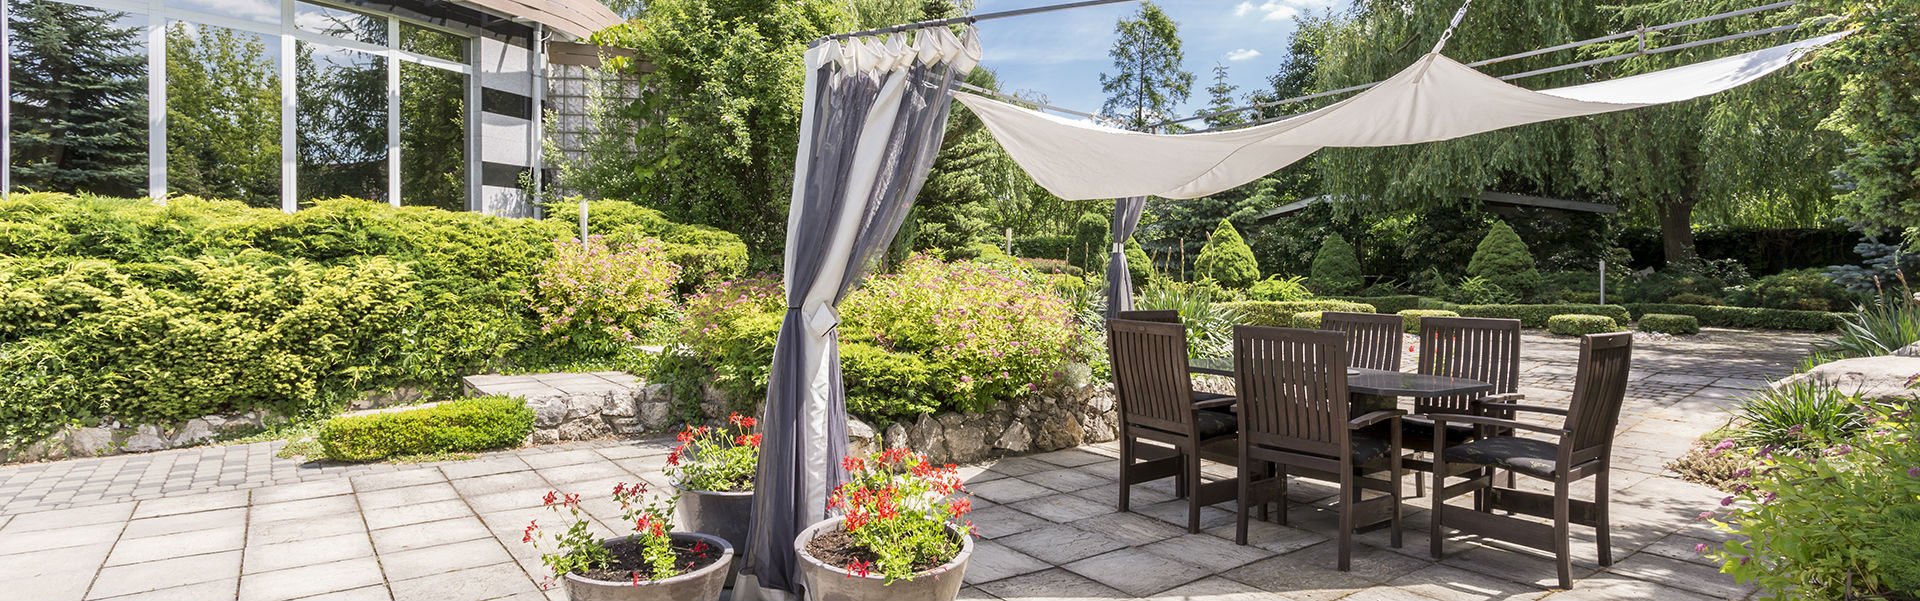 patio-cleaning-company-in-falkirk-slider-image